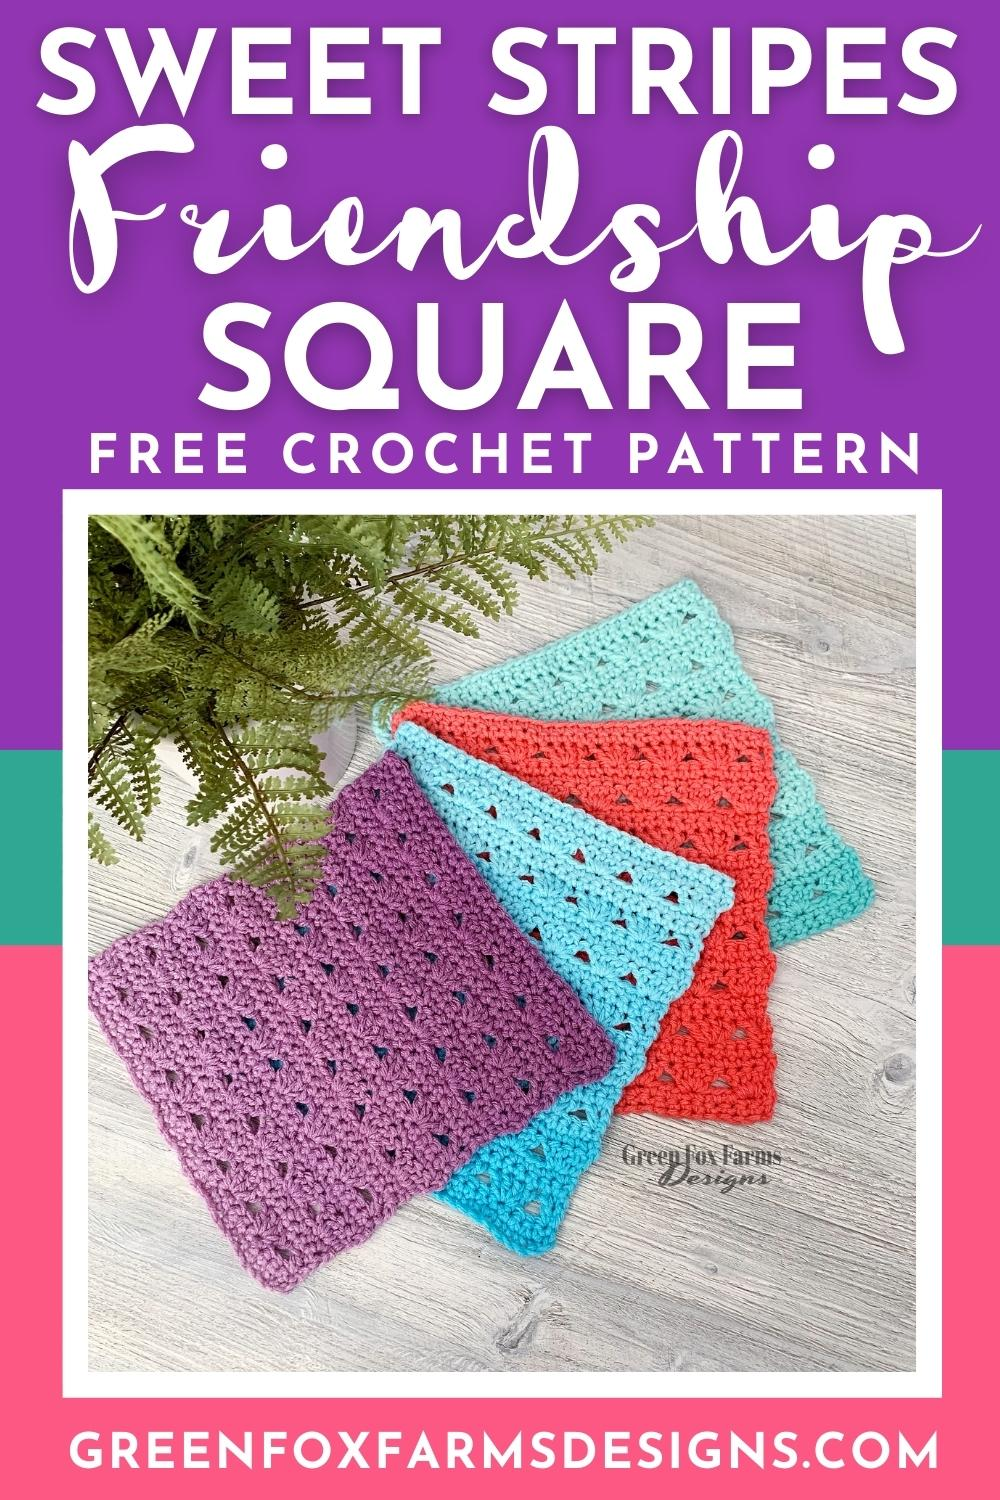 Sweet Stripes Friendship Square Crochet Pattern image with colorful crocheted afghan squares in purple, blue, coral, and mint green by www.greenfoxfarmsdesigns.com